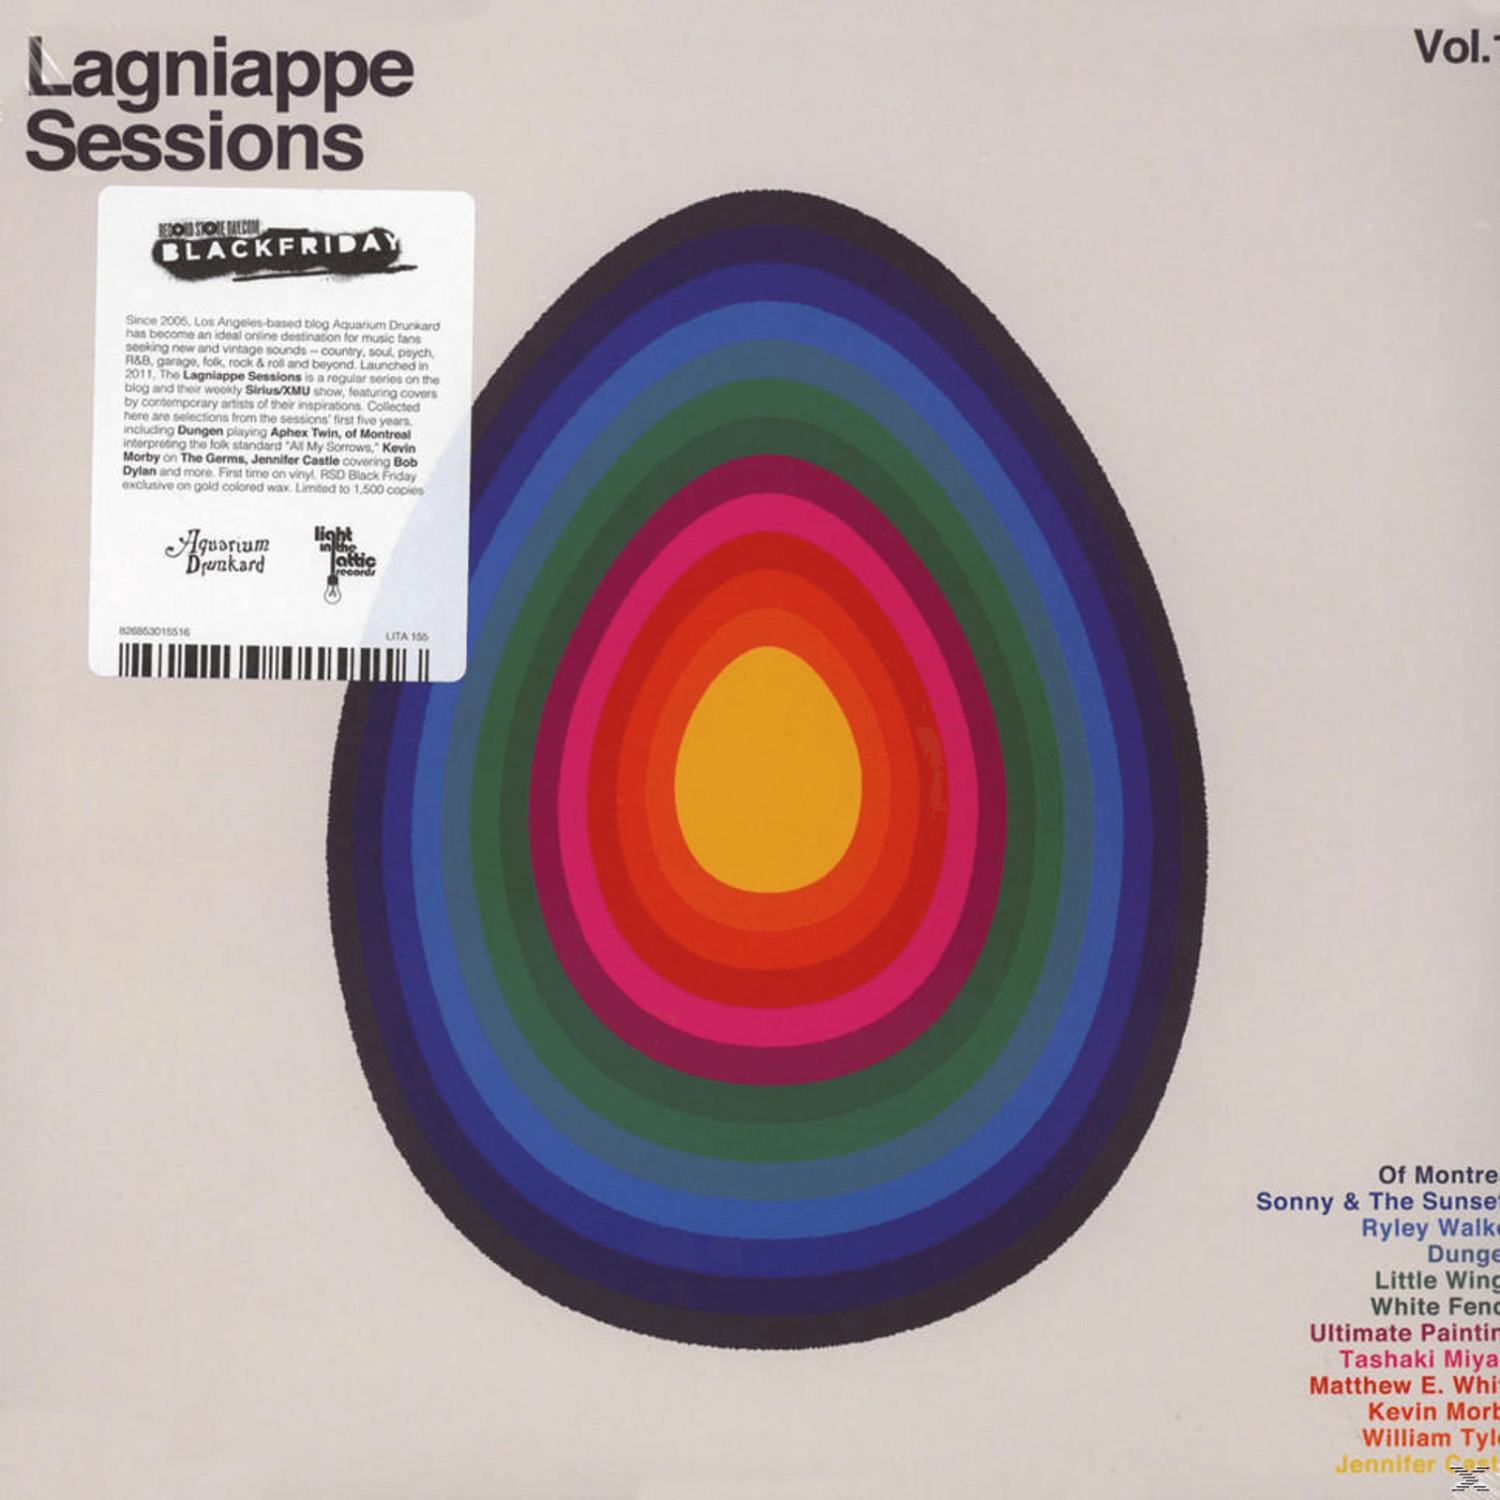 VARIOUS - Lagniappe Sessions Vol. 1 (Limited Go...